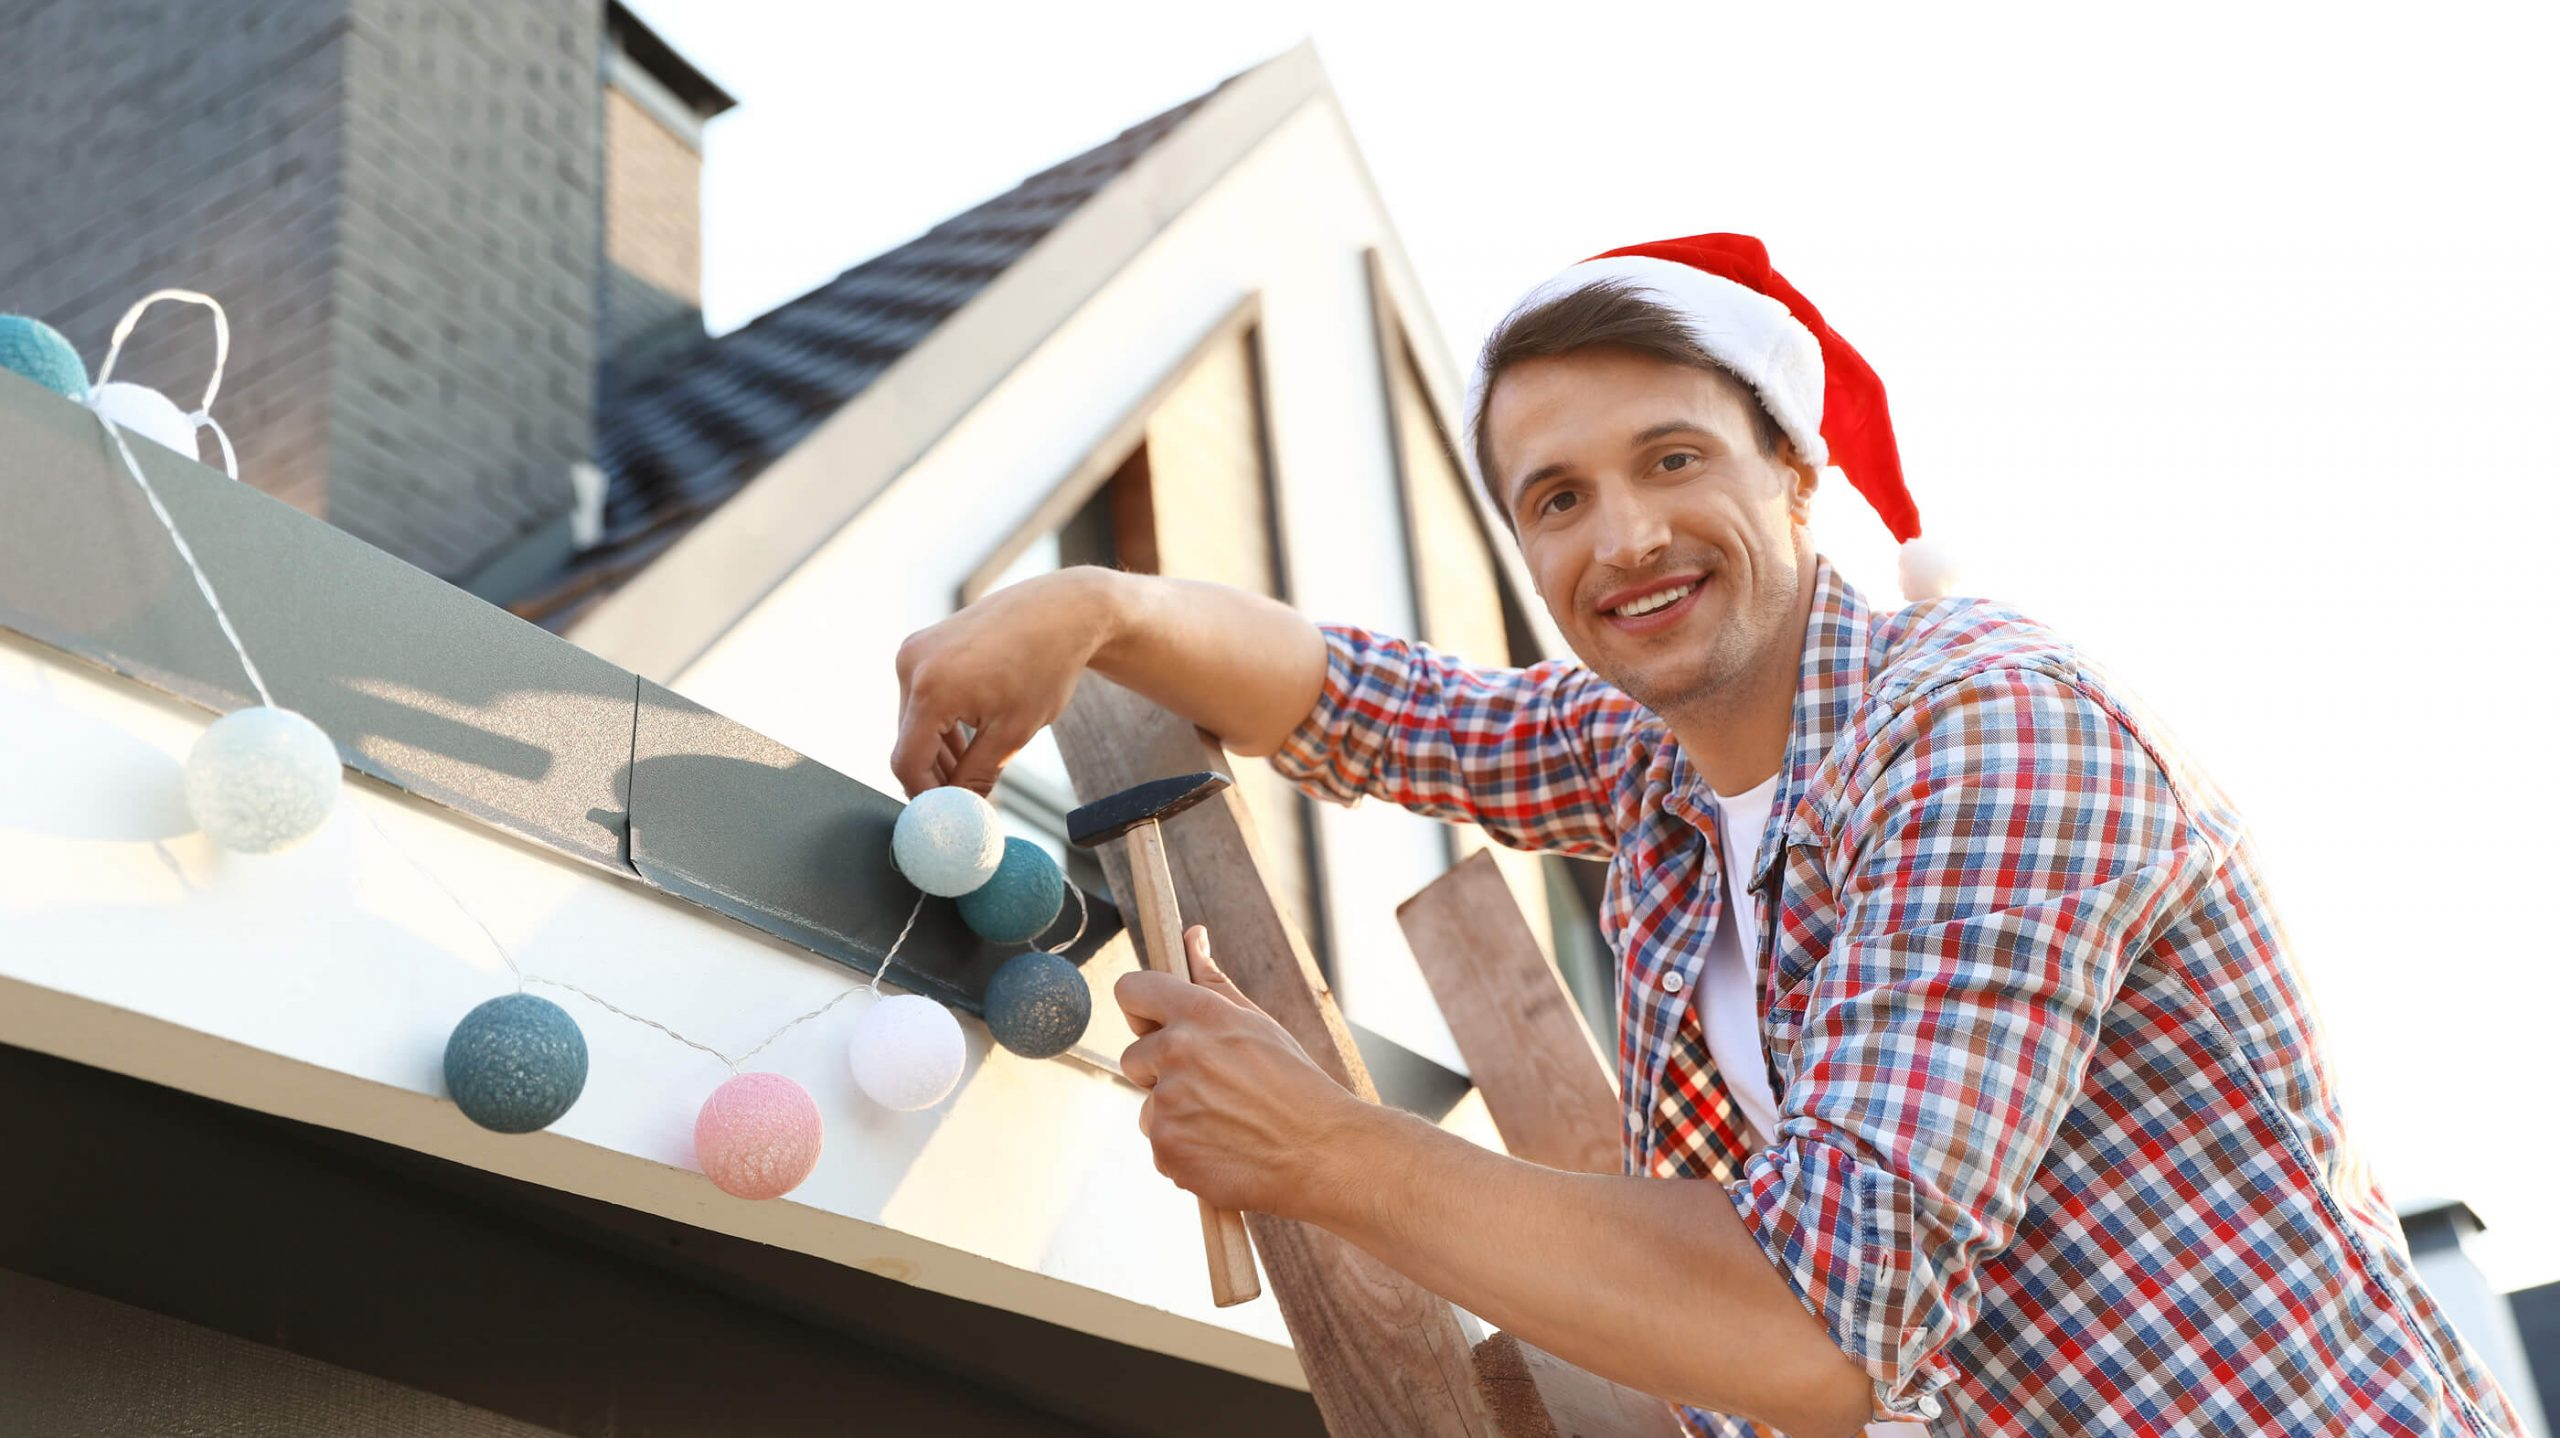 Man-In-Santa-Hat-Decorating-House-with-lights-on-ladder